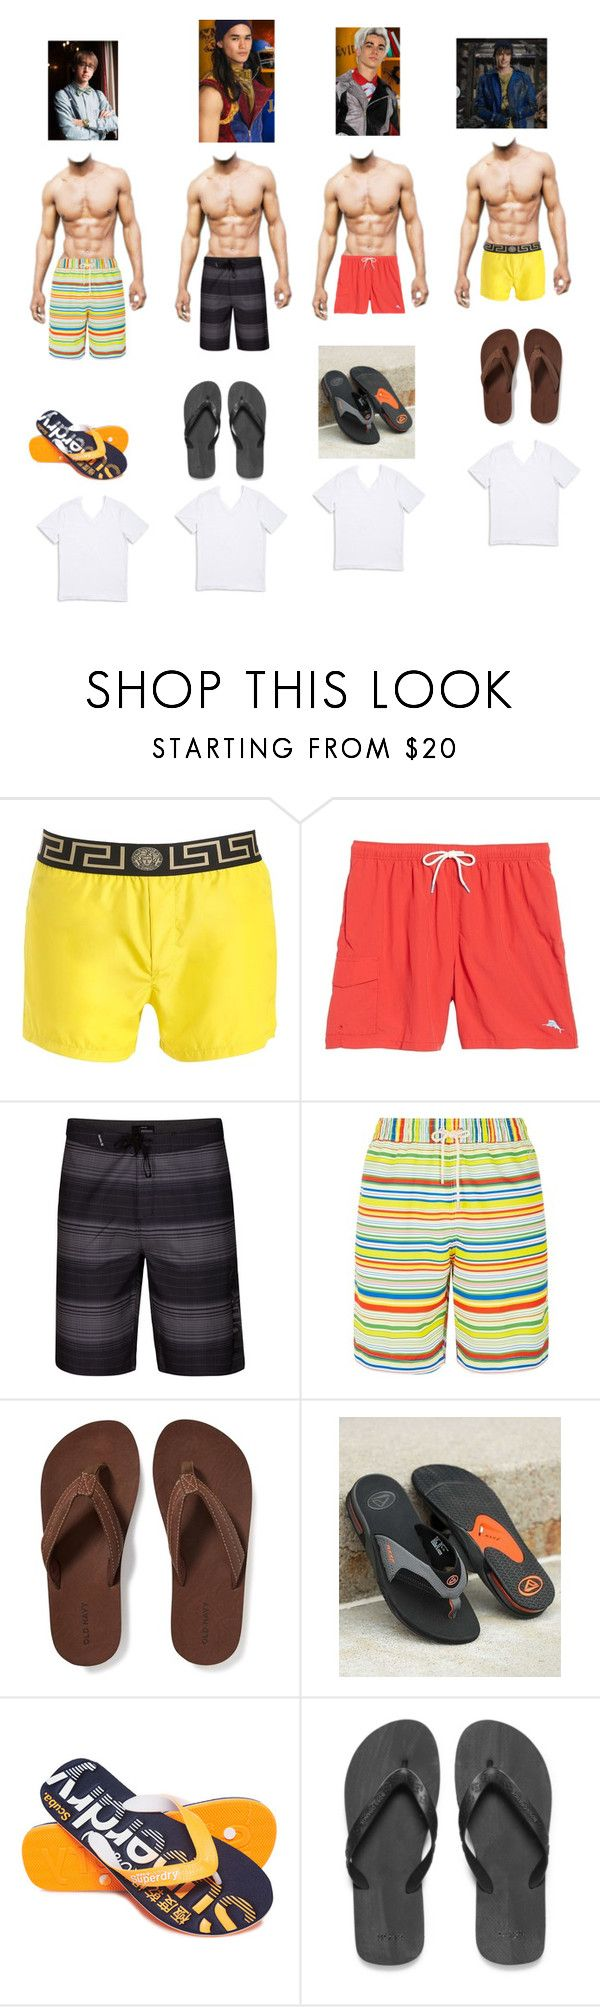 """Beach Day"" by allyssaannayoung13-clearwater ❤ liked on Polyvore featuring Versace, Tommy Bahama, Hurley, Loewe, Old Navy, Reef, Superdry, BOSS Orange, 1670 HBC and men's fashion"